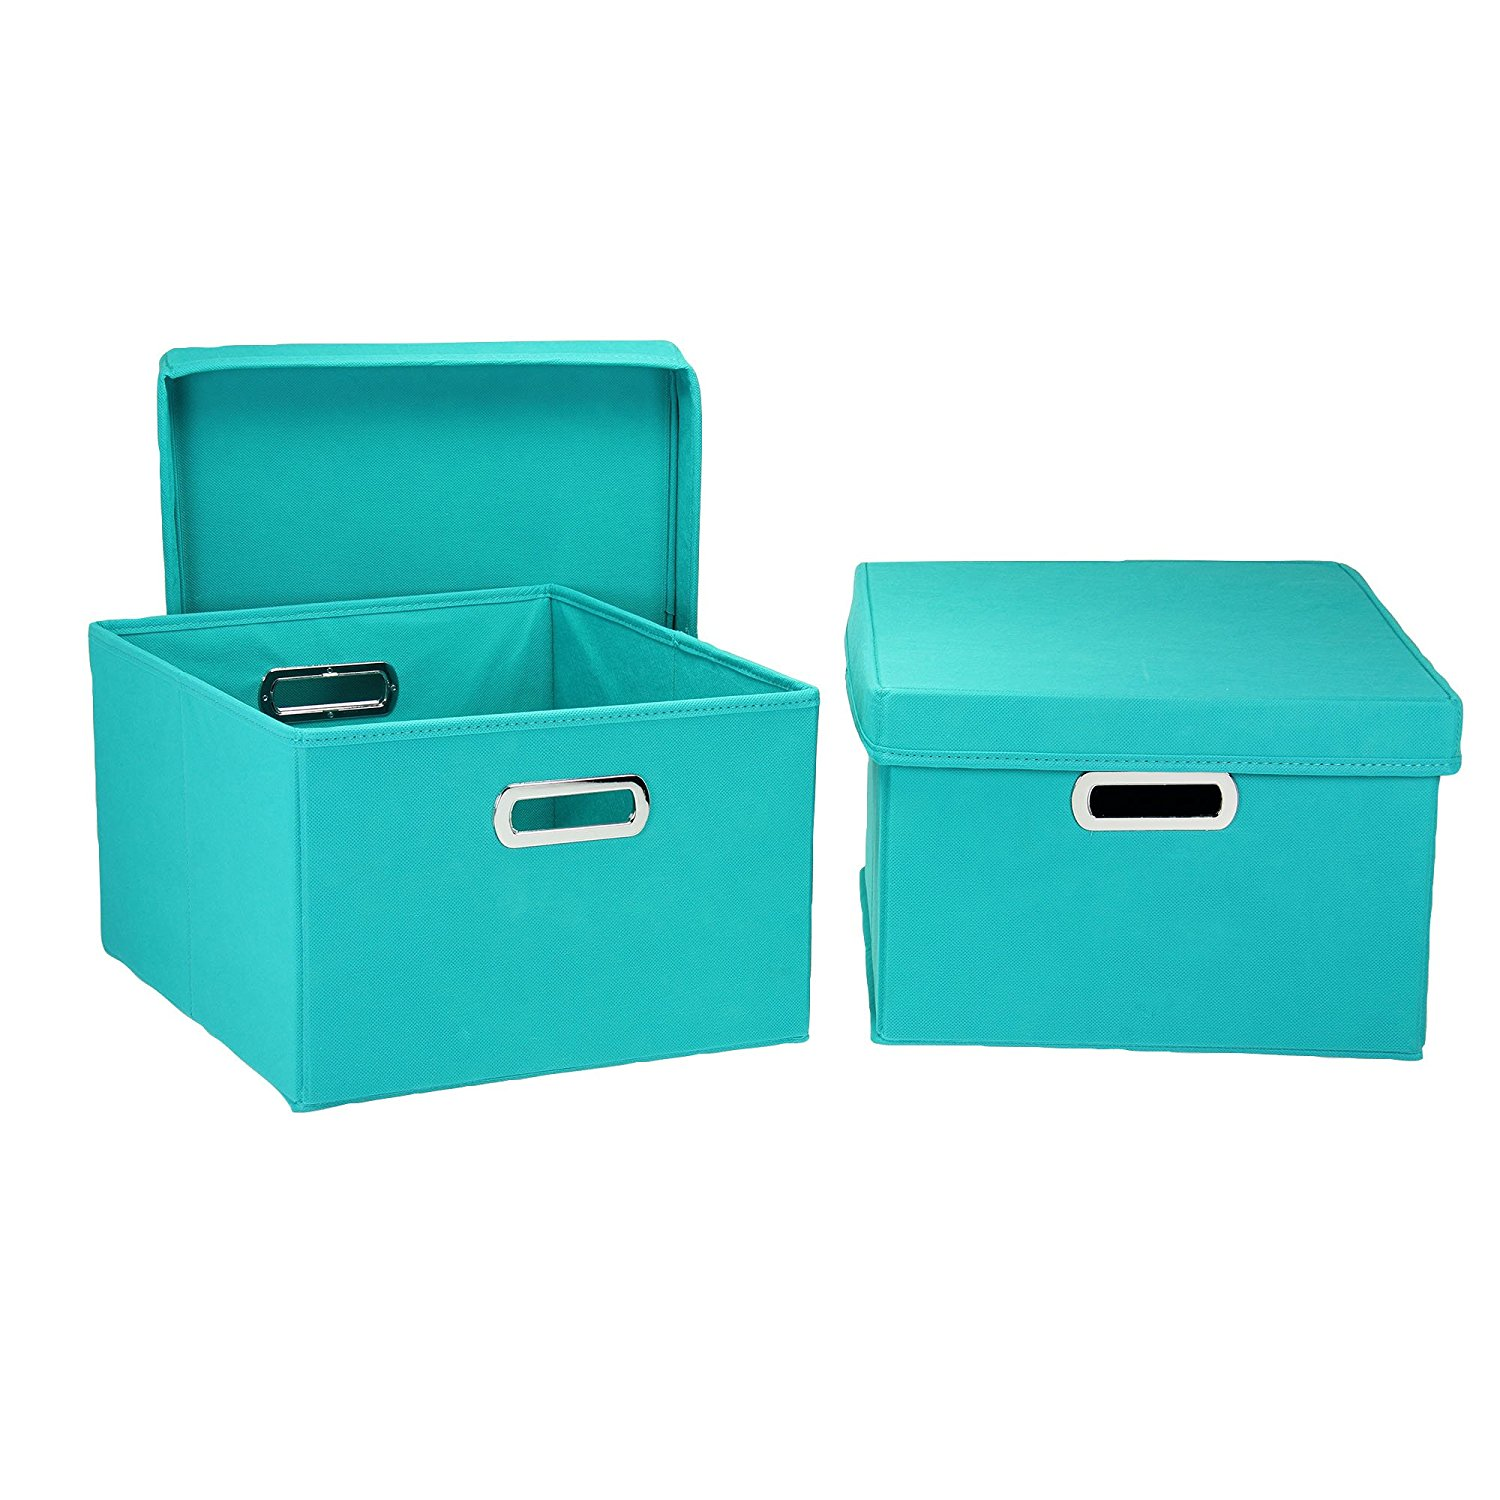 Merveilleux Household Essentials Fabric Storage Boxes